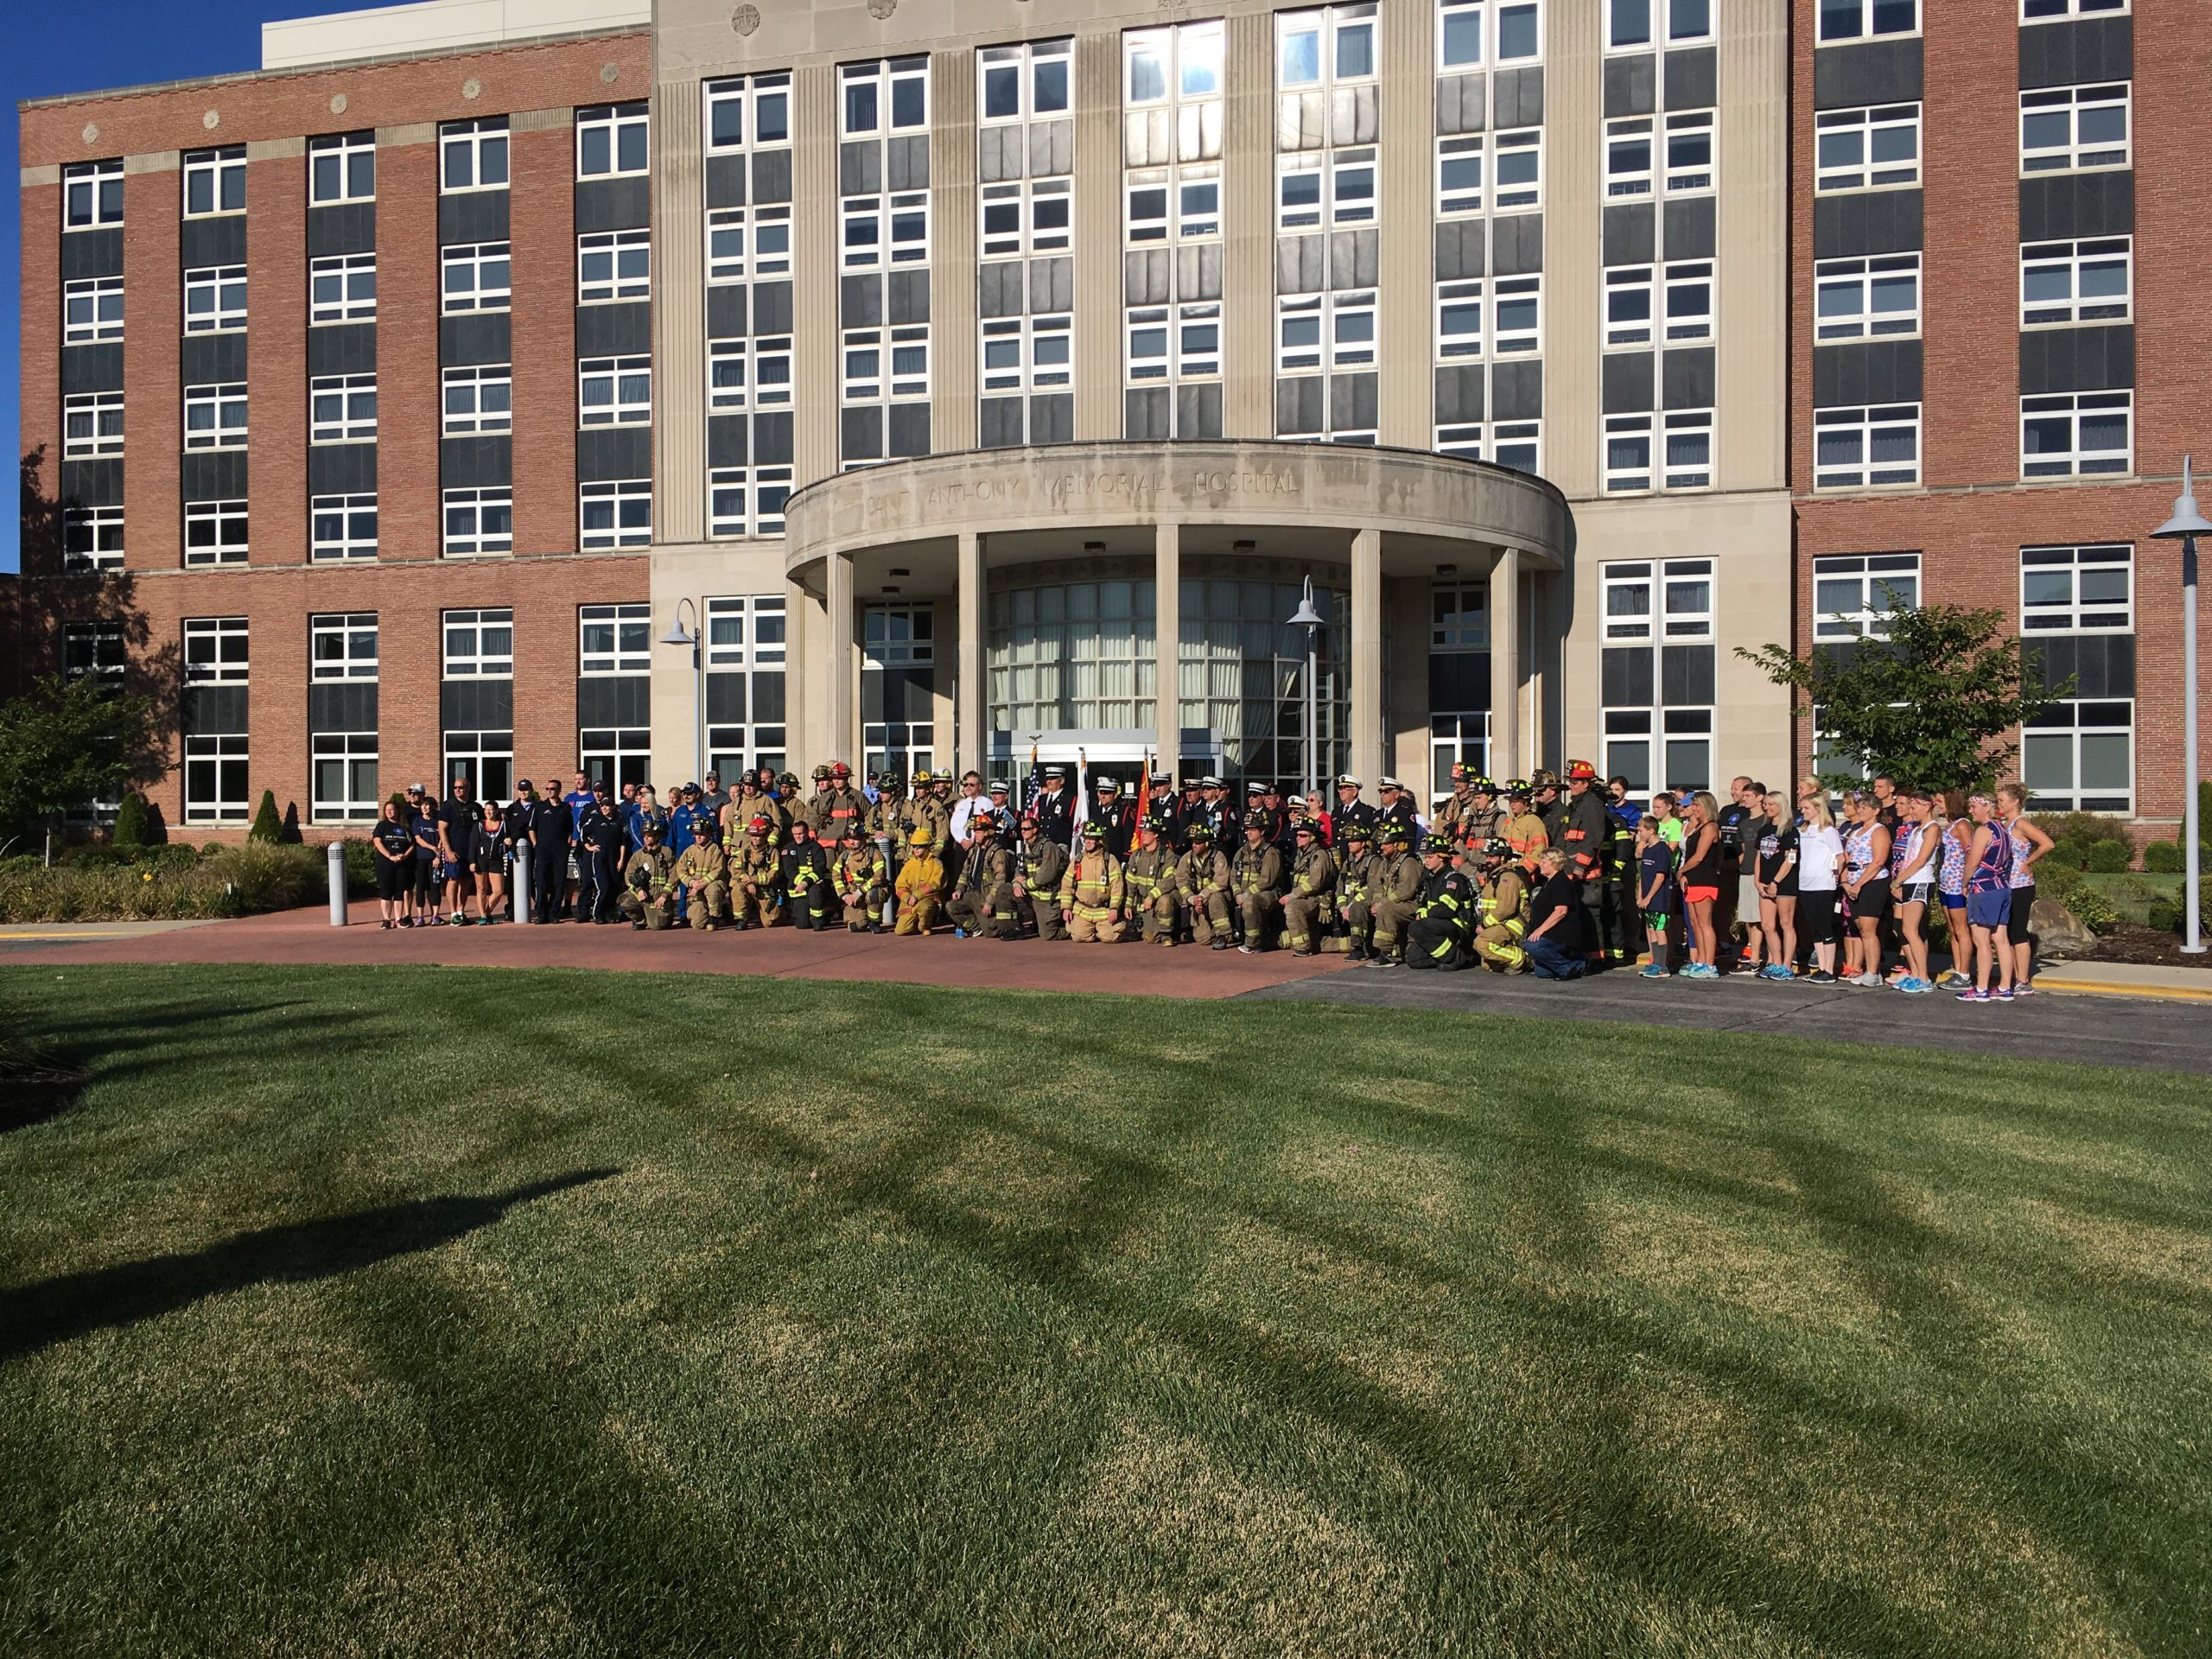 2017 9/11 Honor Stair Climb Held Sunday